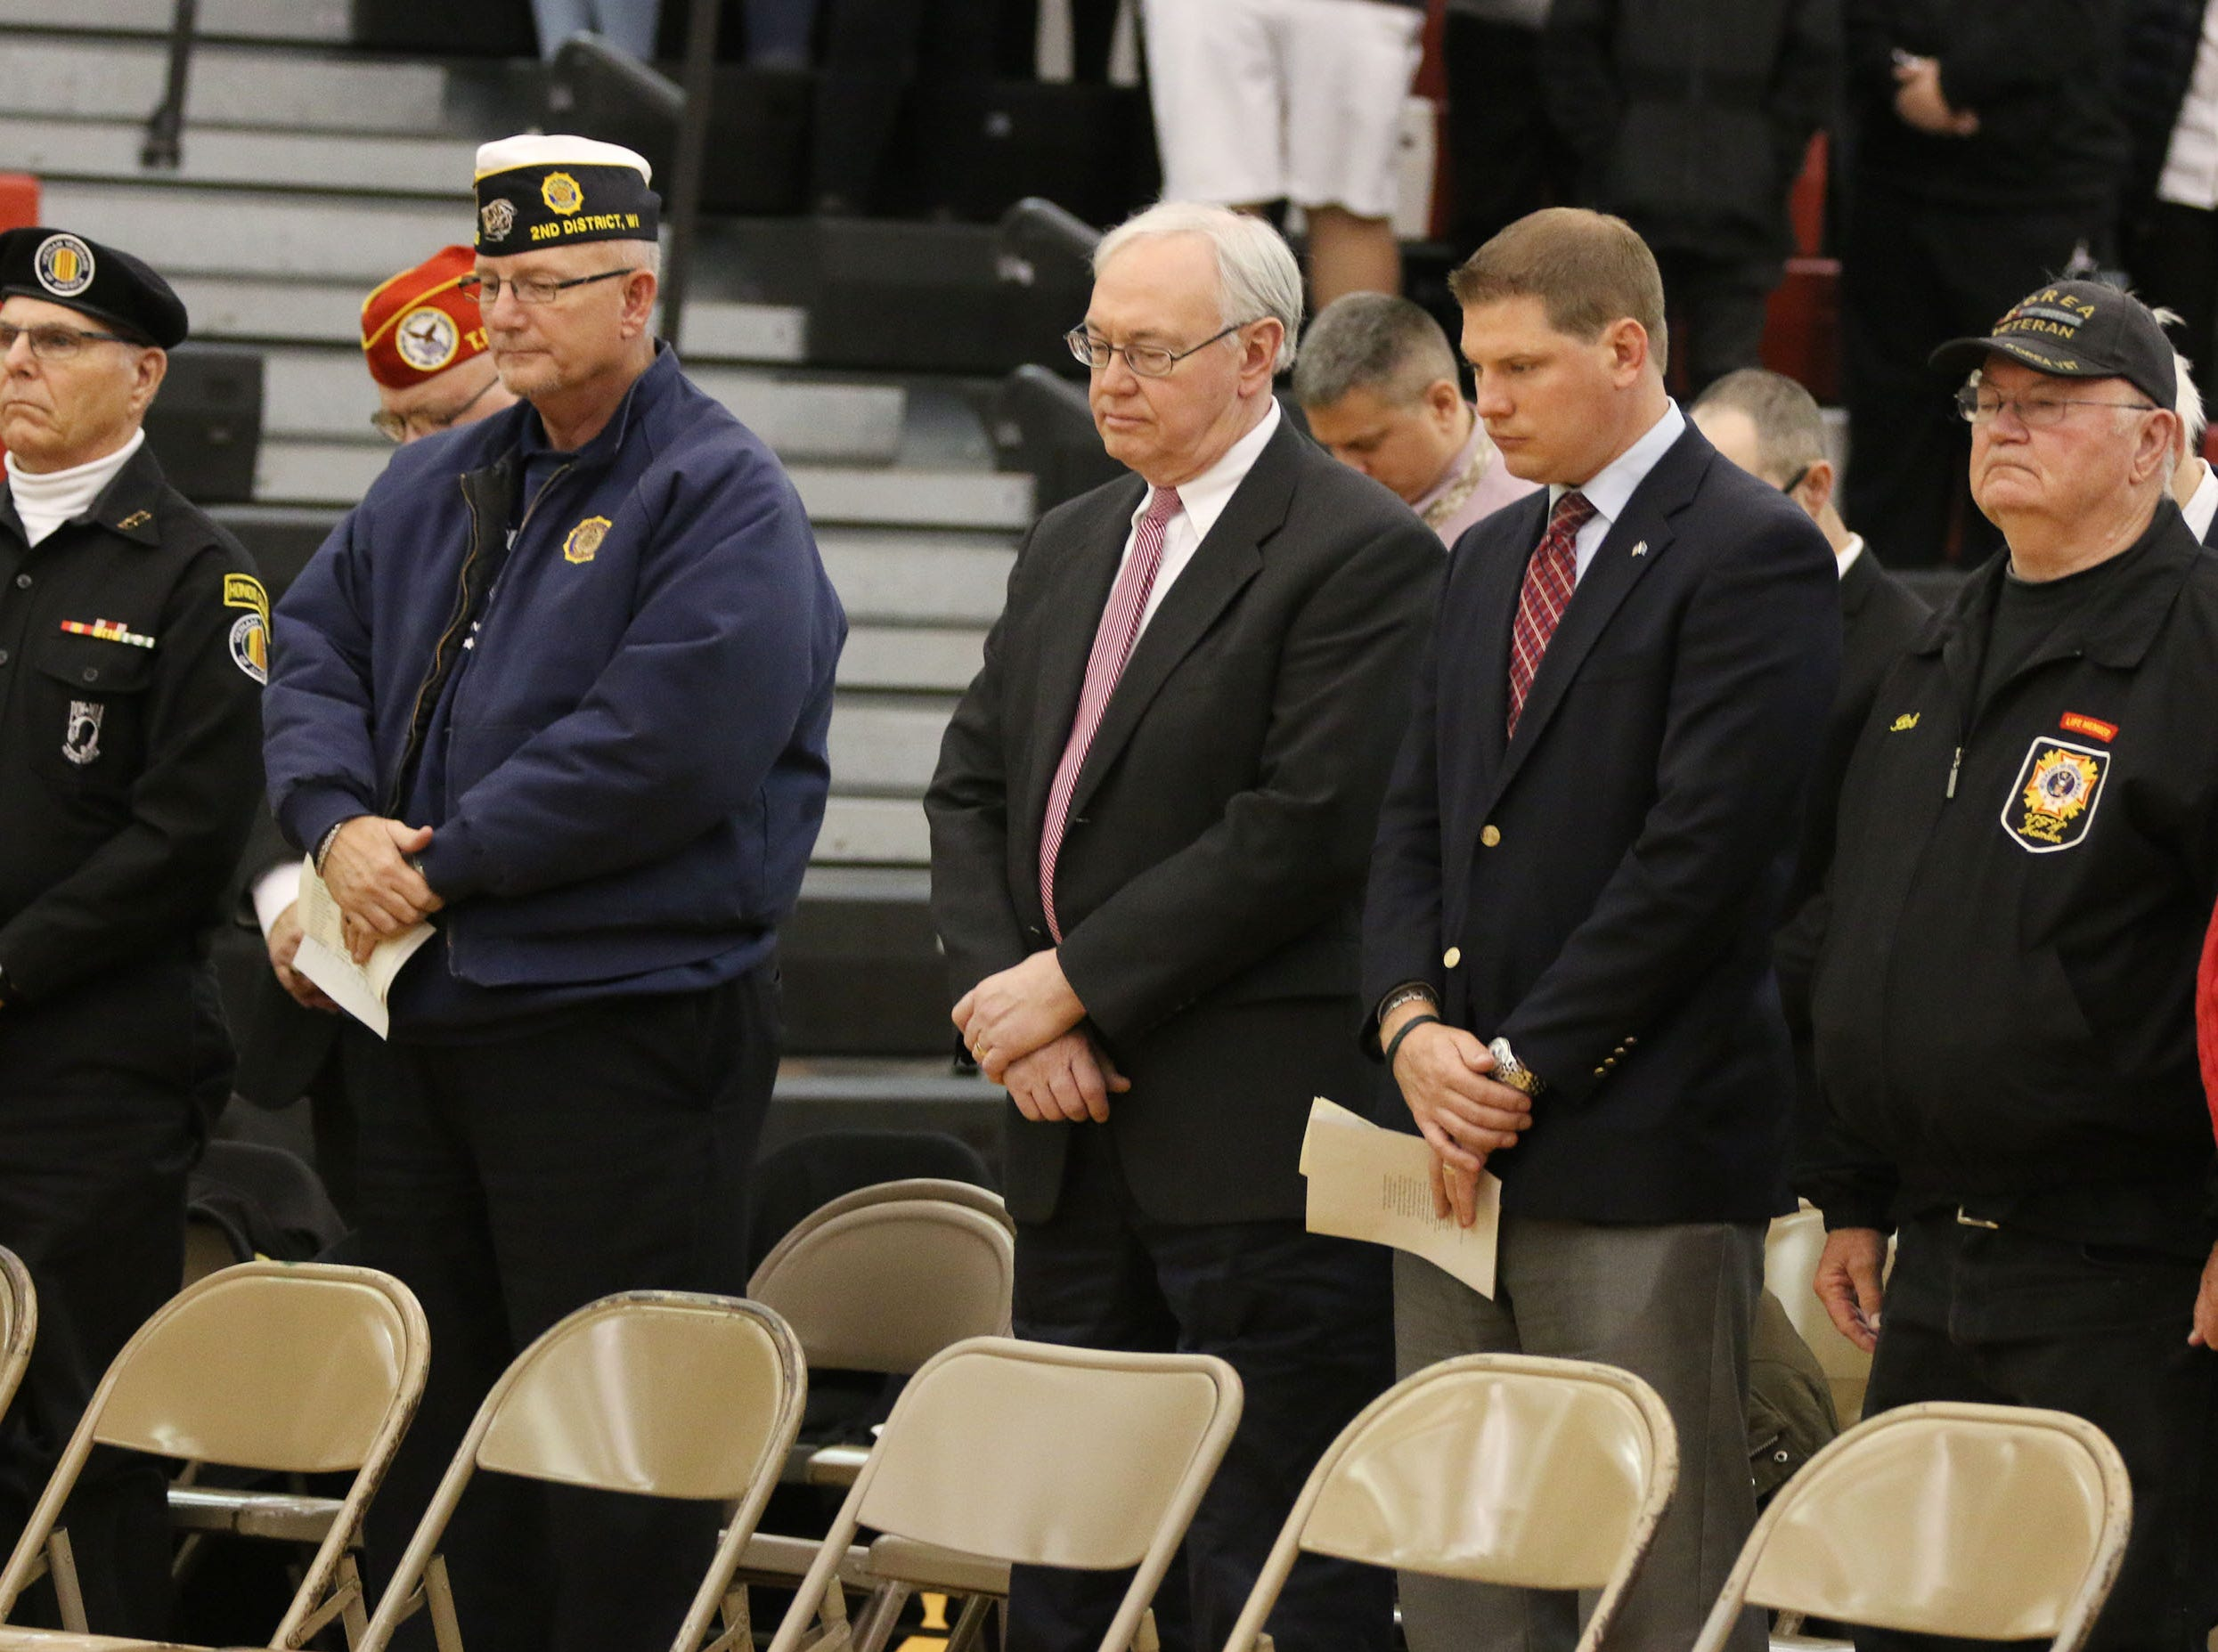 Dignitaries stand during a moment of silence at the Sheboygan South Veterans Day Program, Friday, November 9, 2018, in Sheboygan, Wis.